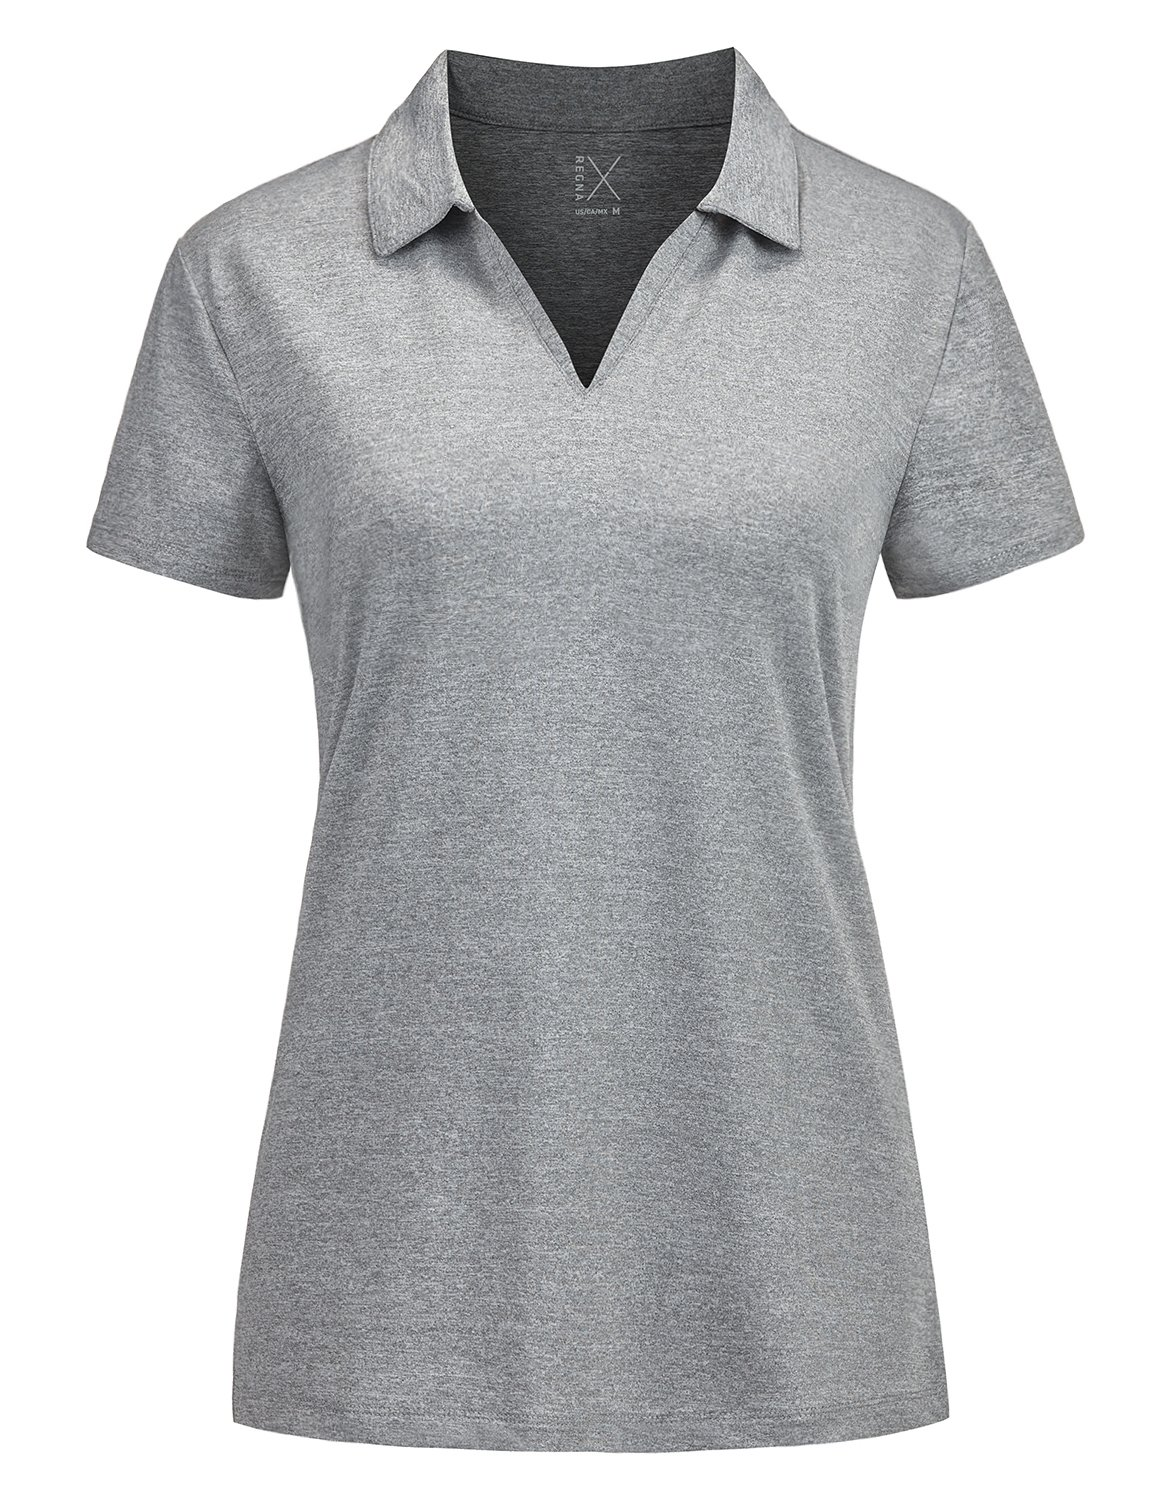 Regna X v Neck Fitness Tops Golf Short Sleeve us Polo Shirts for Women Grey XL